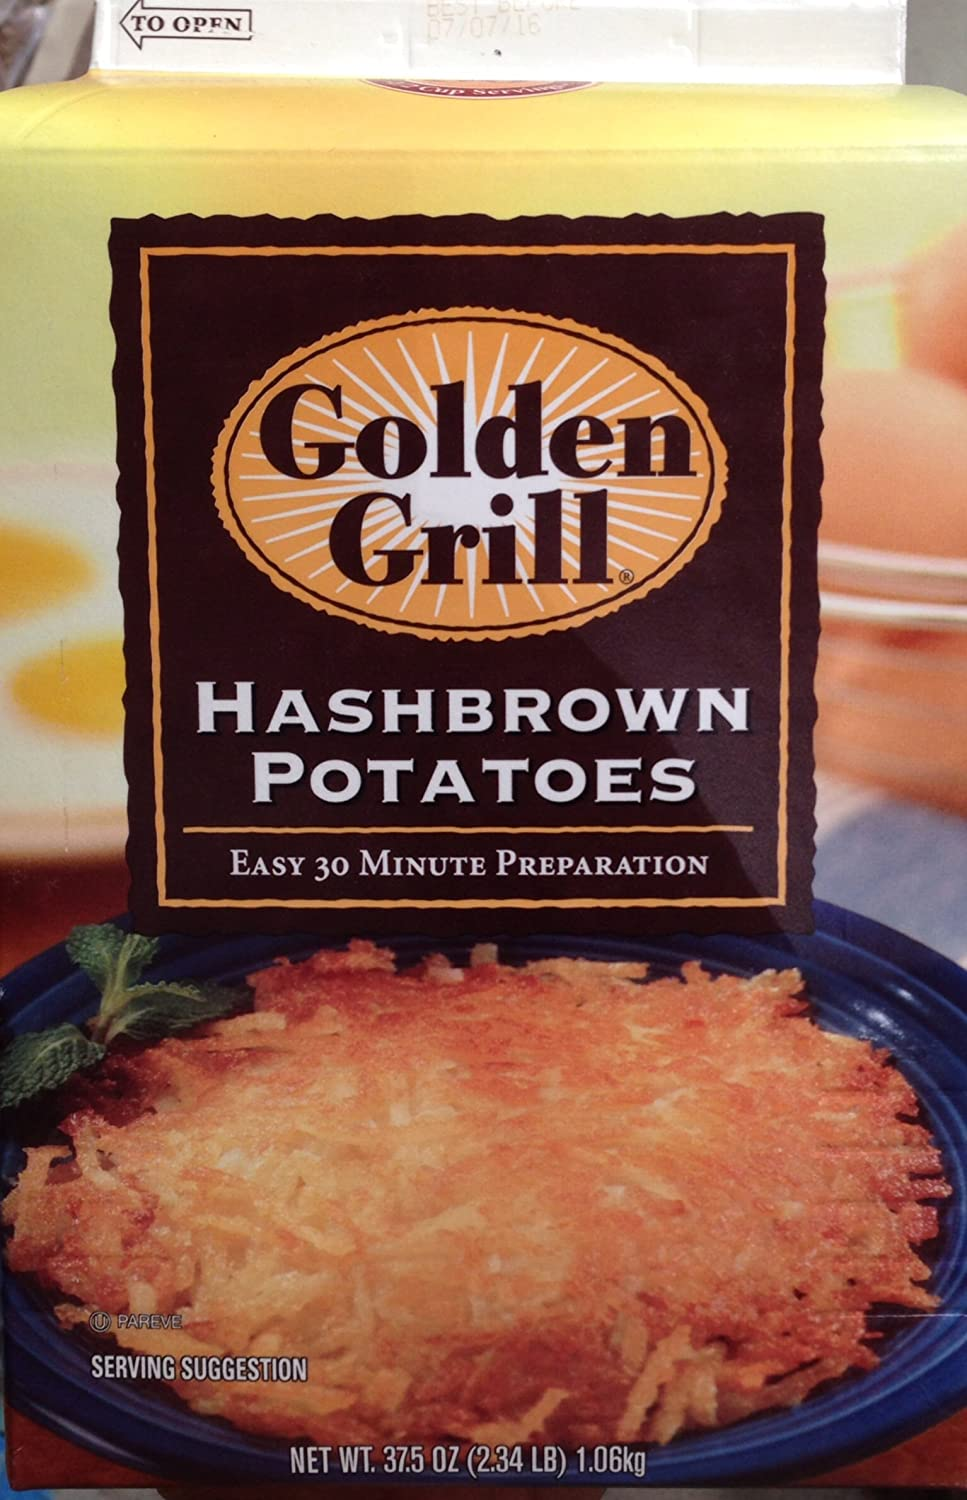 Golden Grill Hash Brown Potatoes 37.5 Oz. (2.34 Lb) ,60 Servings